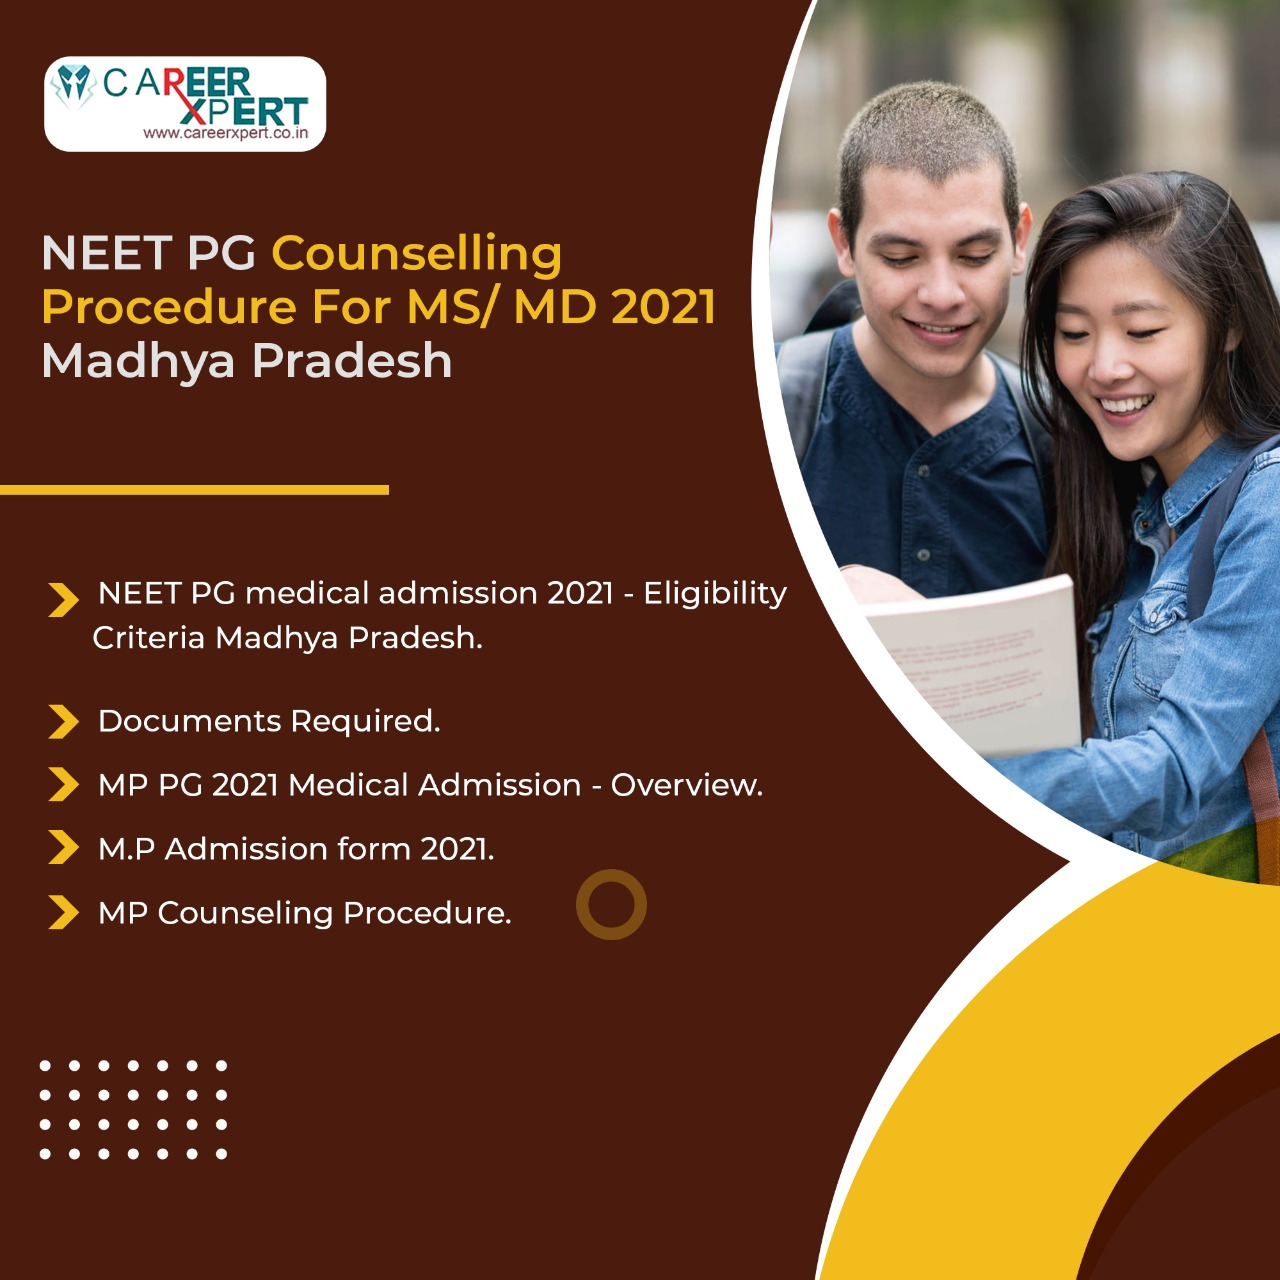 NEET PG Counselling Procedure For MS/ MD 2021 Madhya Pradesh